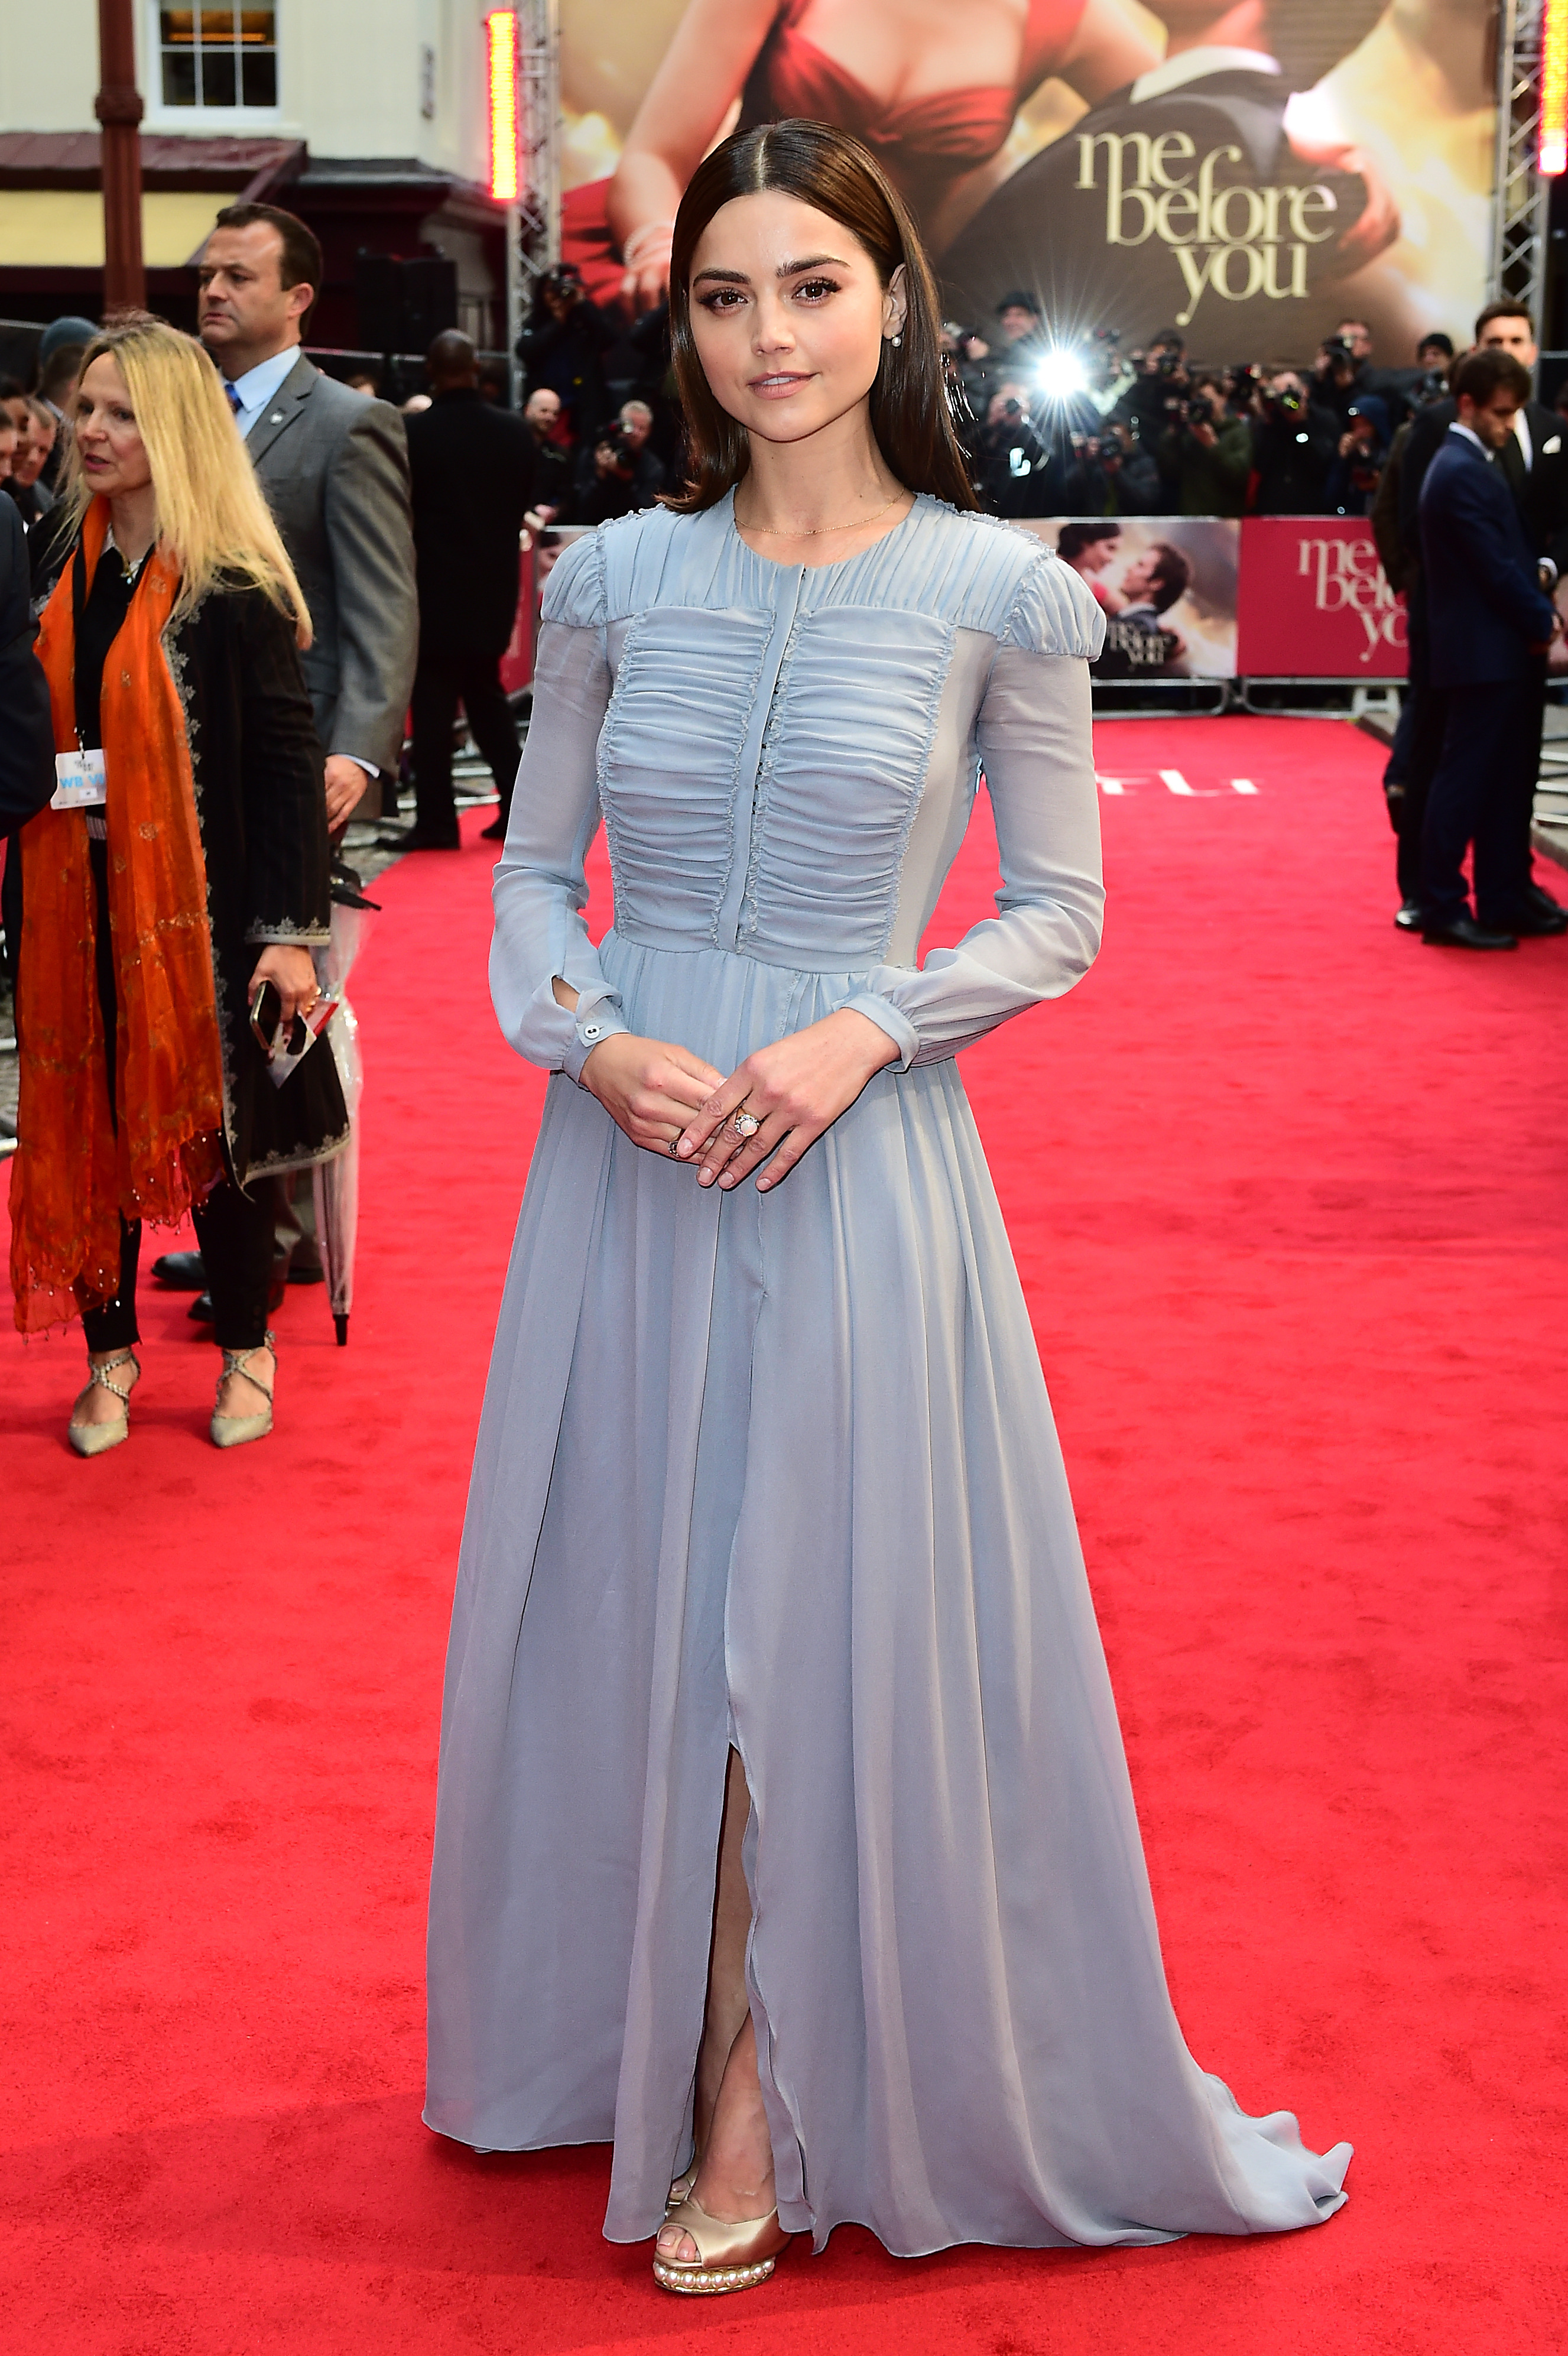 9 Times Jenna Coleman Was The Queen Of The Red Carpet